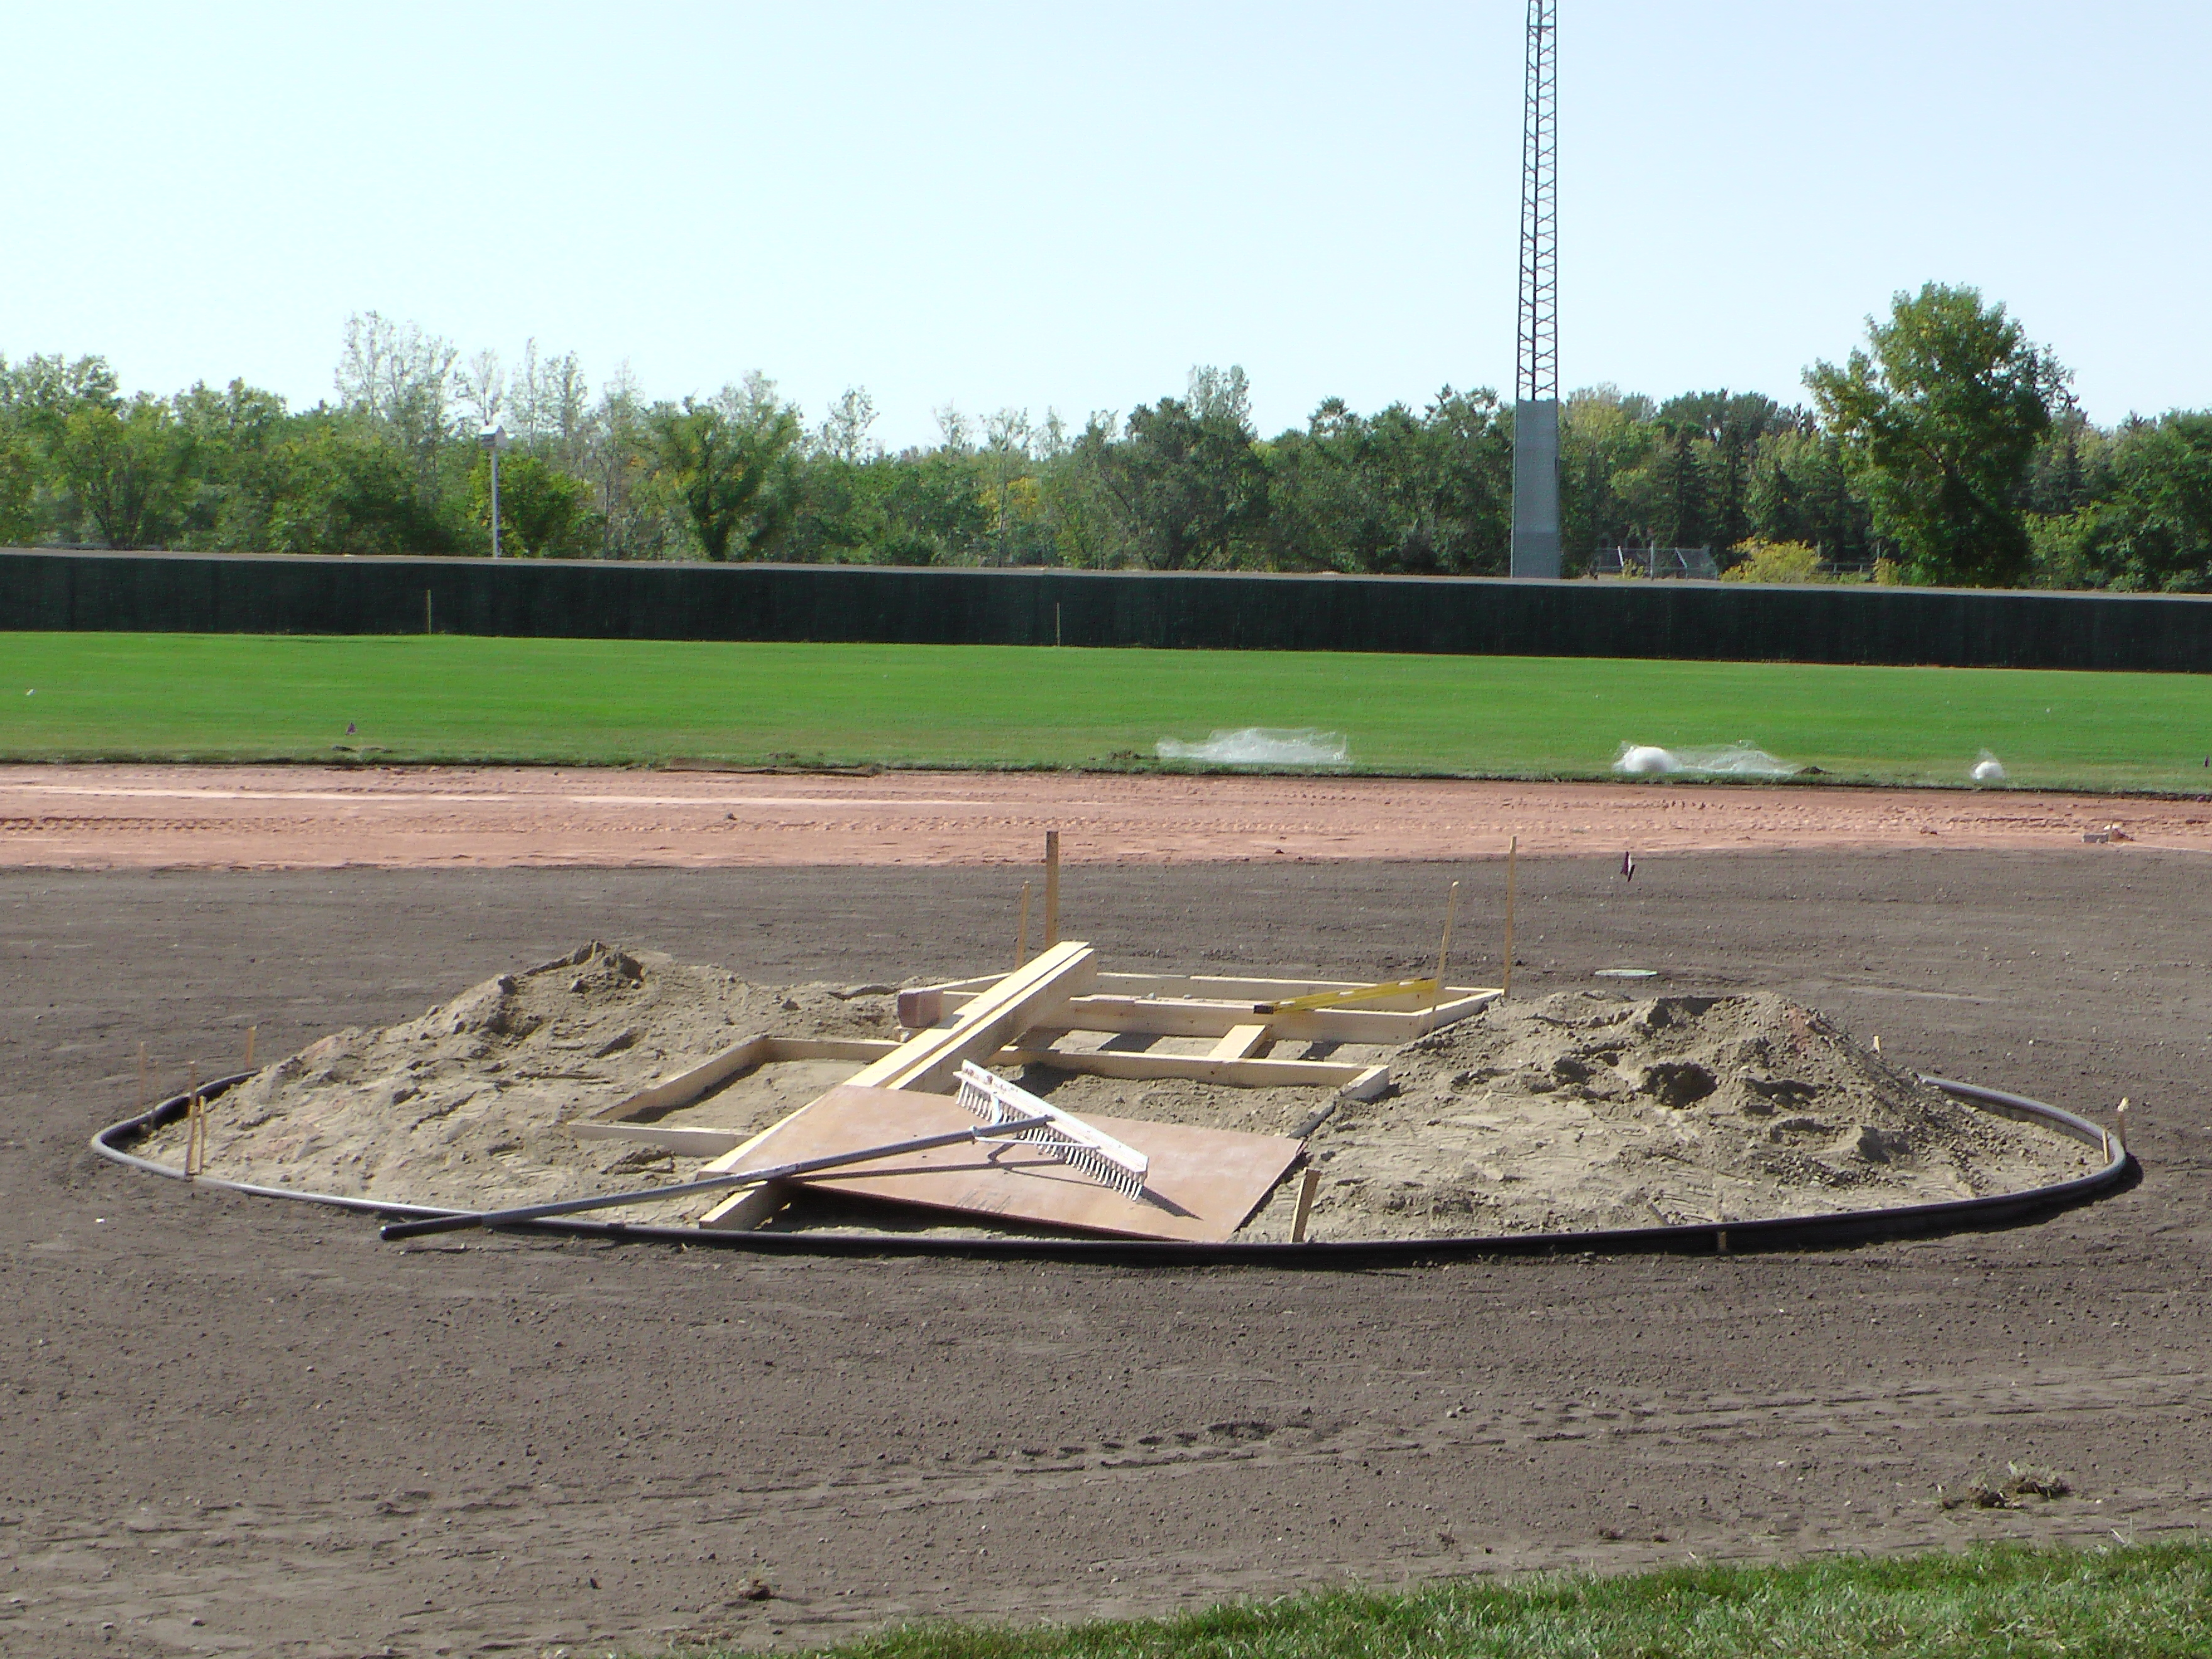 Sept 5 2018 Optimist Park Field Renovations, Placing New Sod/Leveling! - Image 13